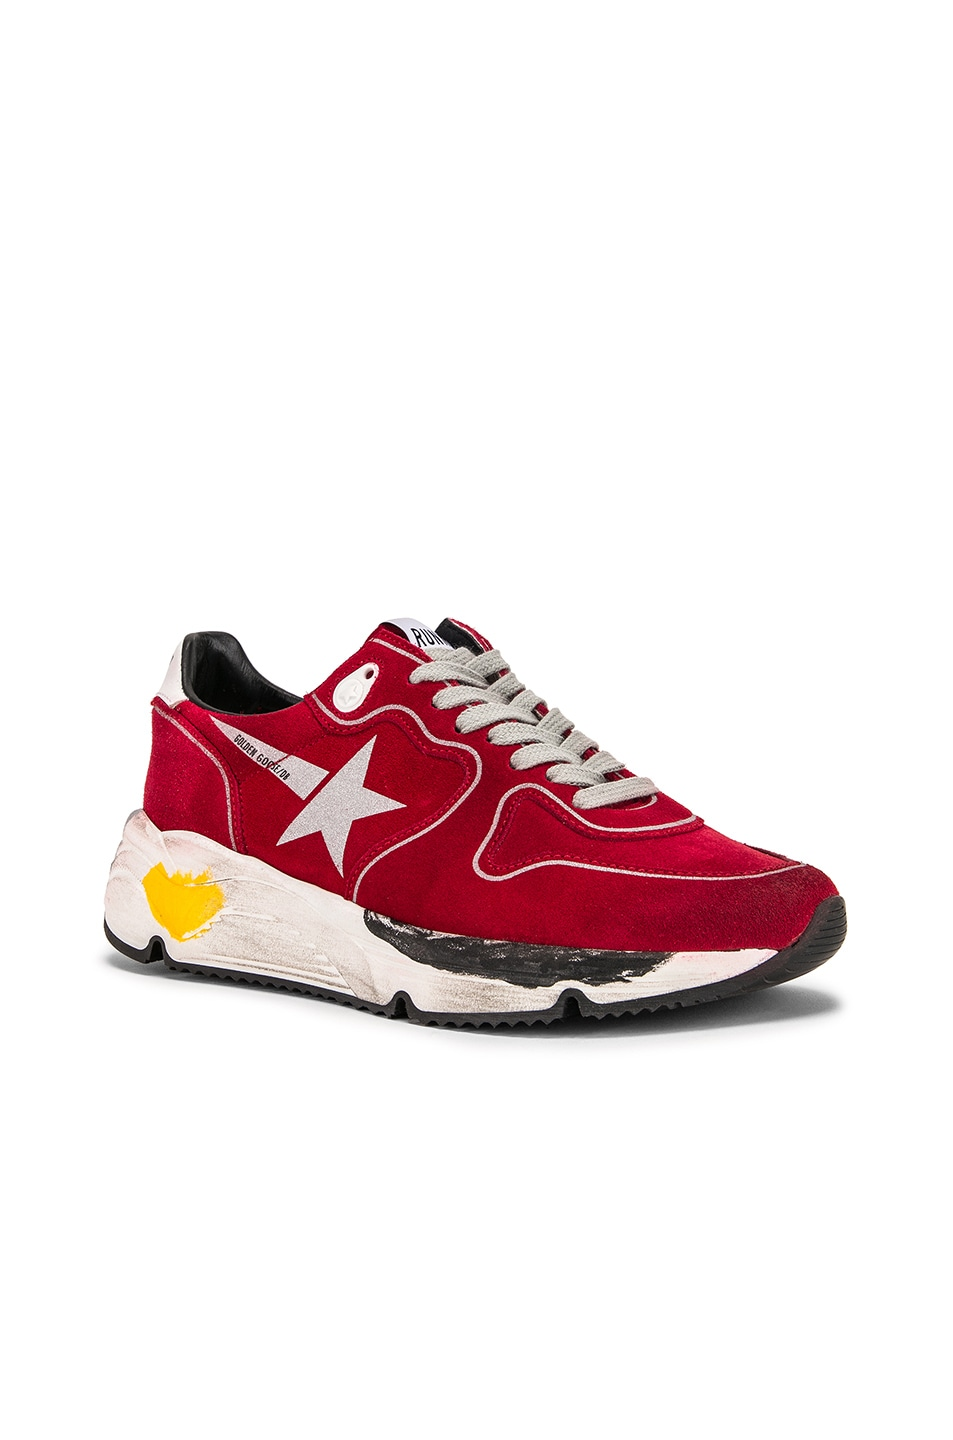 Image 2 of Golden Goose Running Sole Sneakers in Red Suede & Silver Star